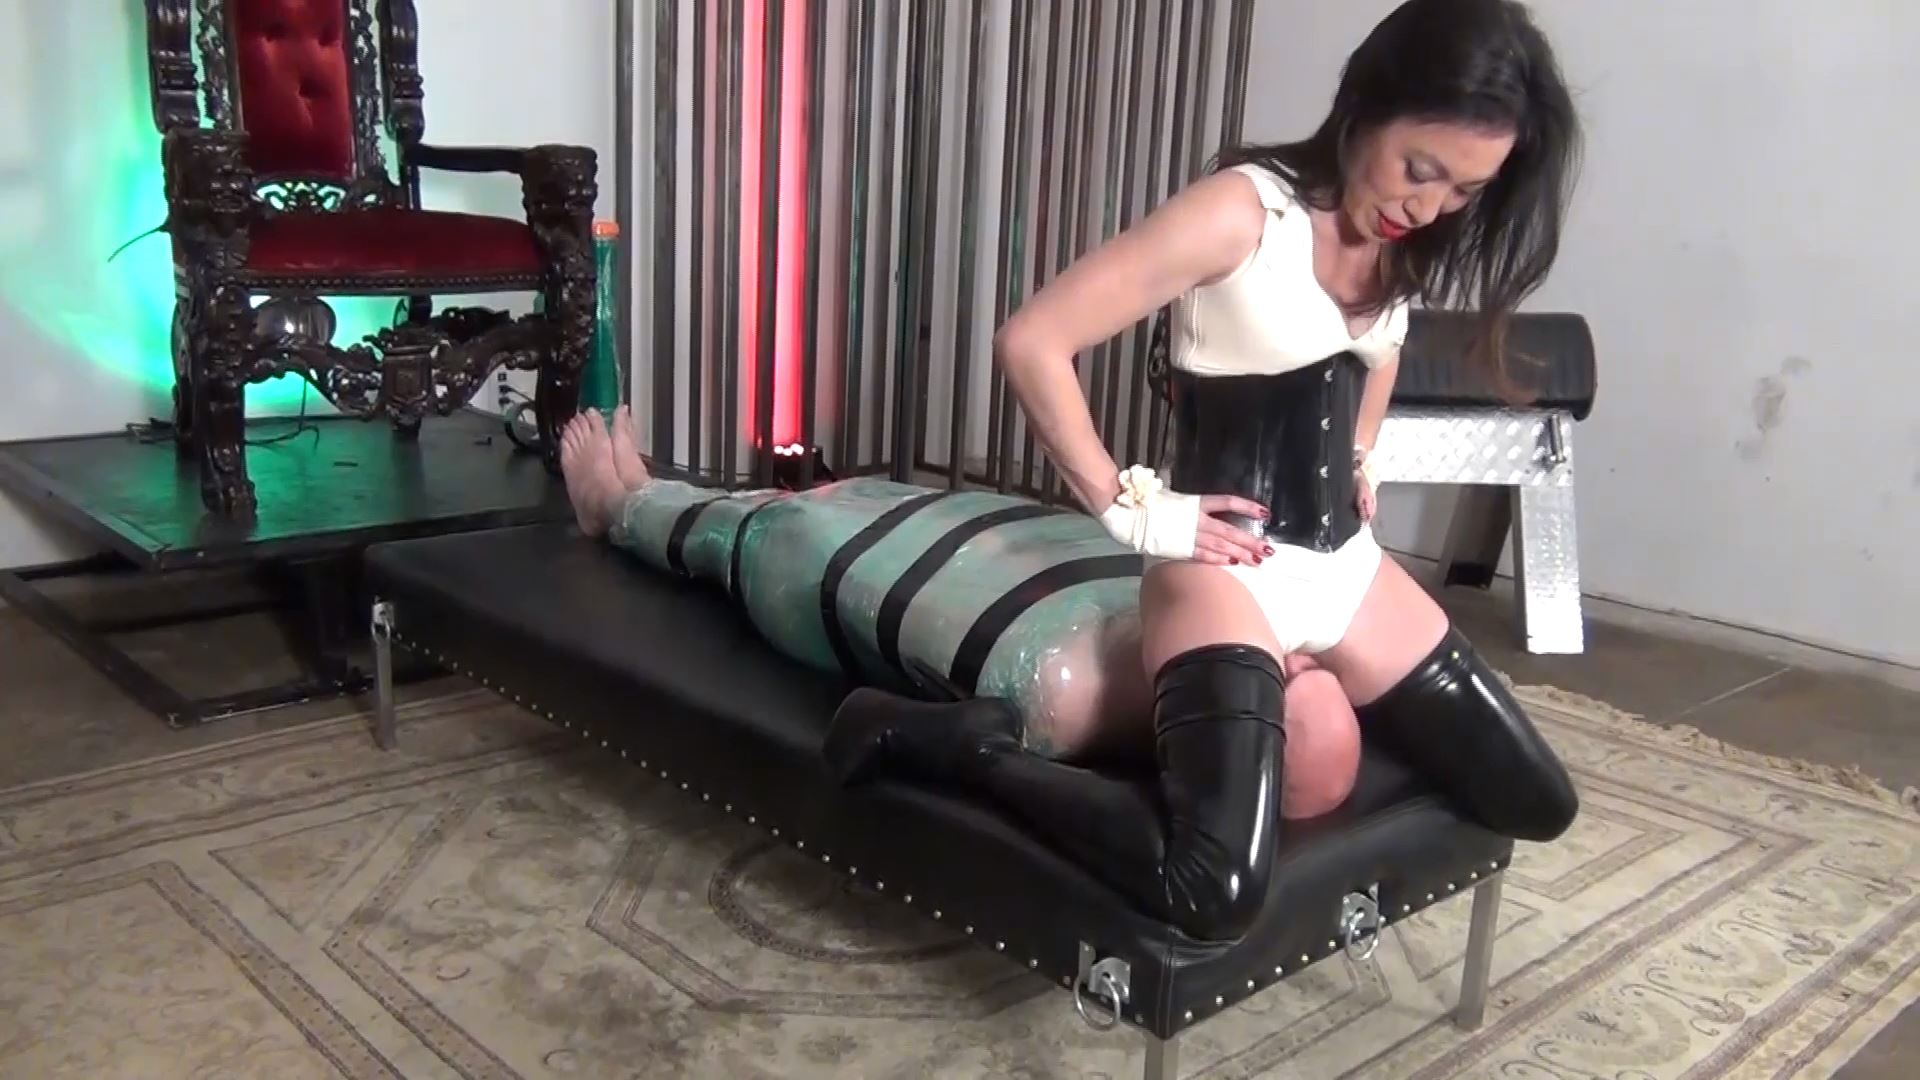 Goddess Pepper In Scene: YOU WILL ONLY BREATH MY ASS - ASIAN CRUELTY - FULL HD/1080p/MP4